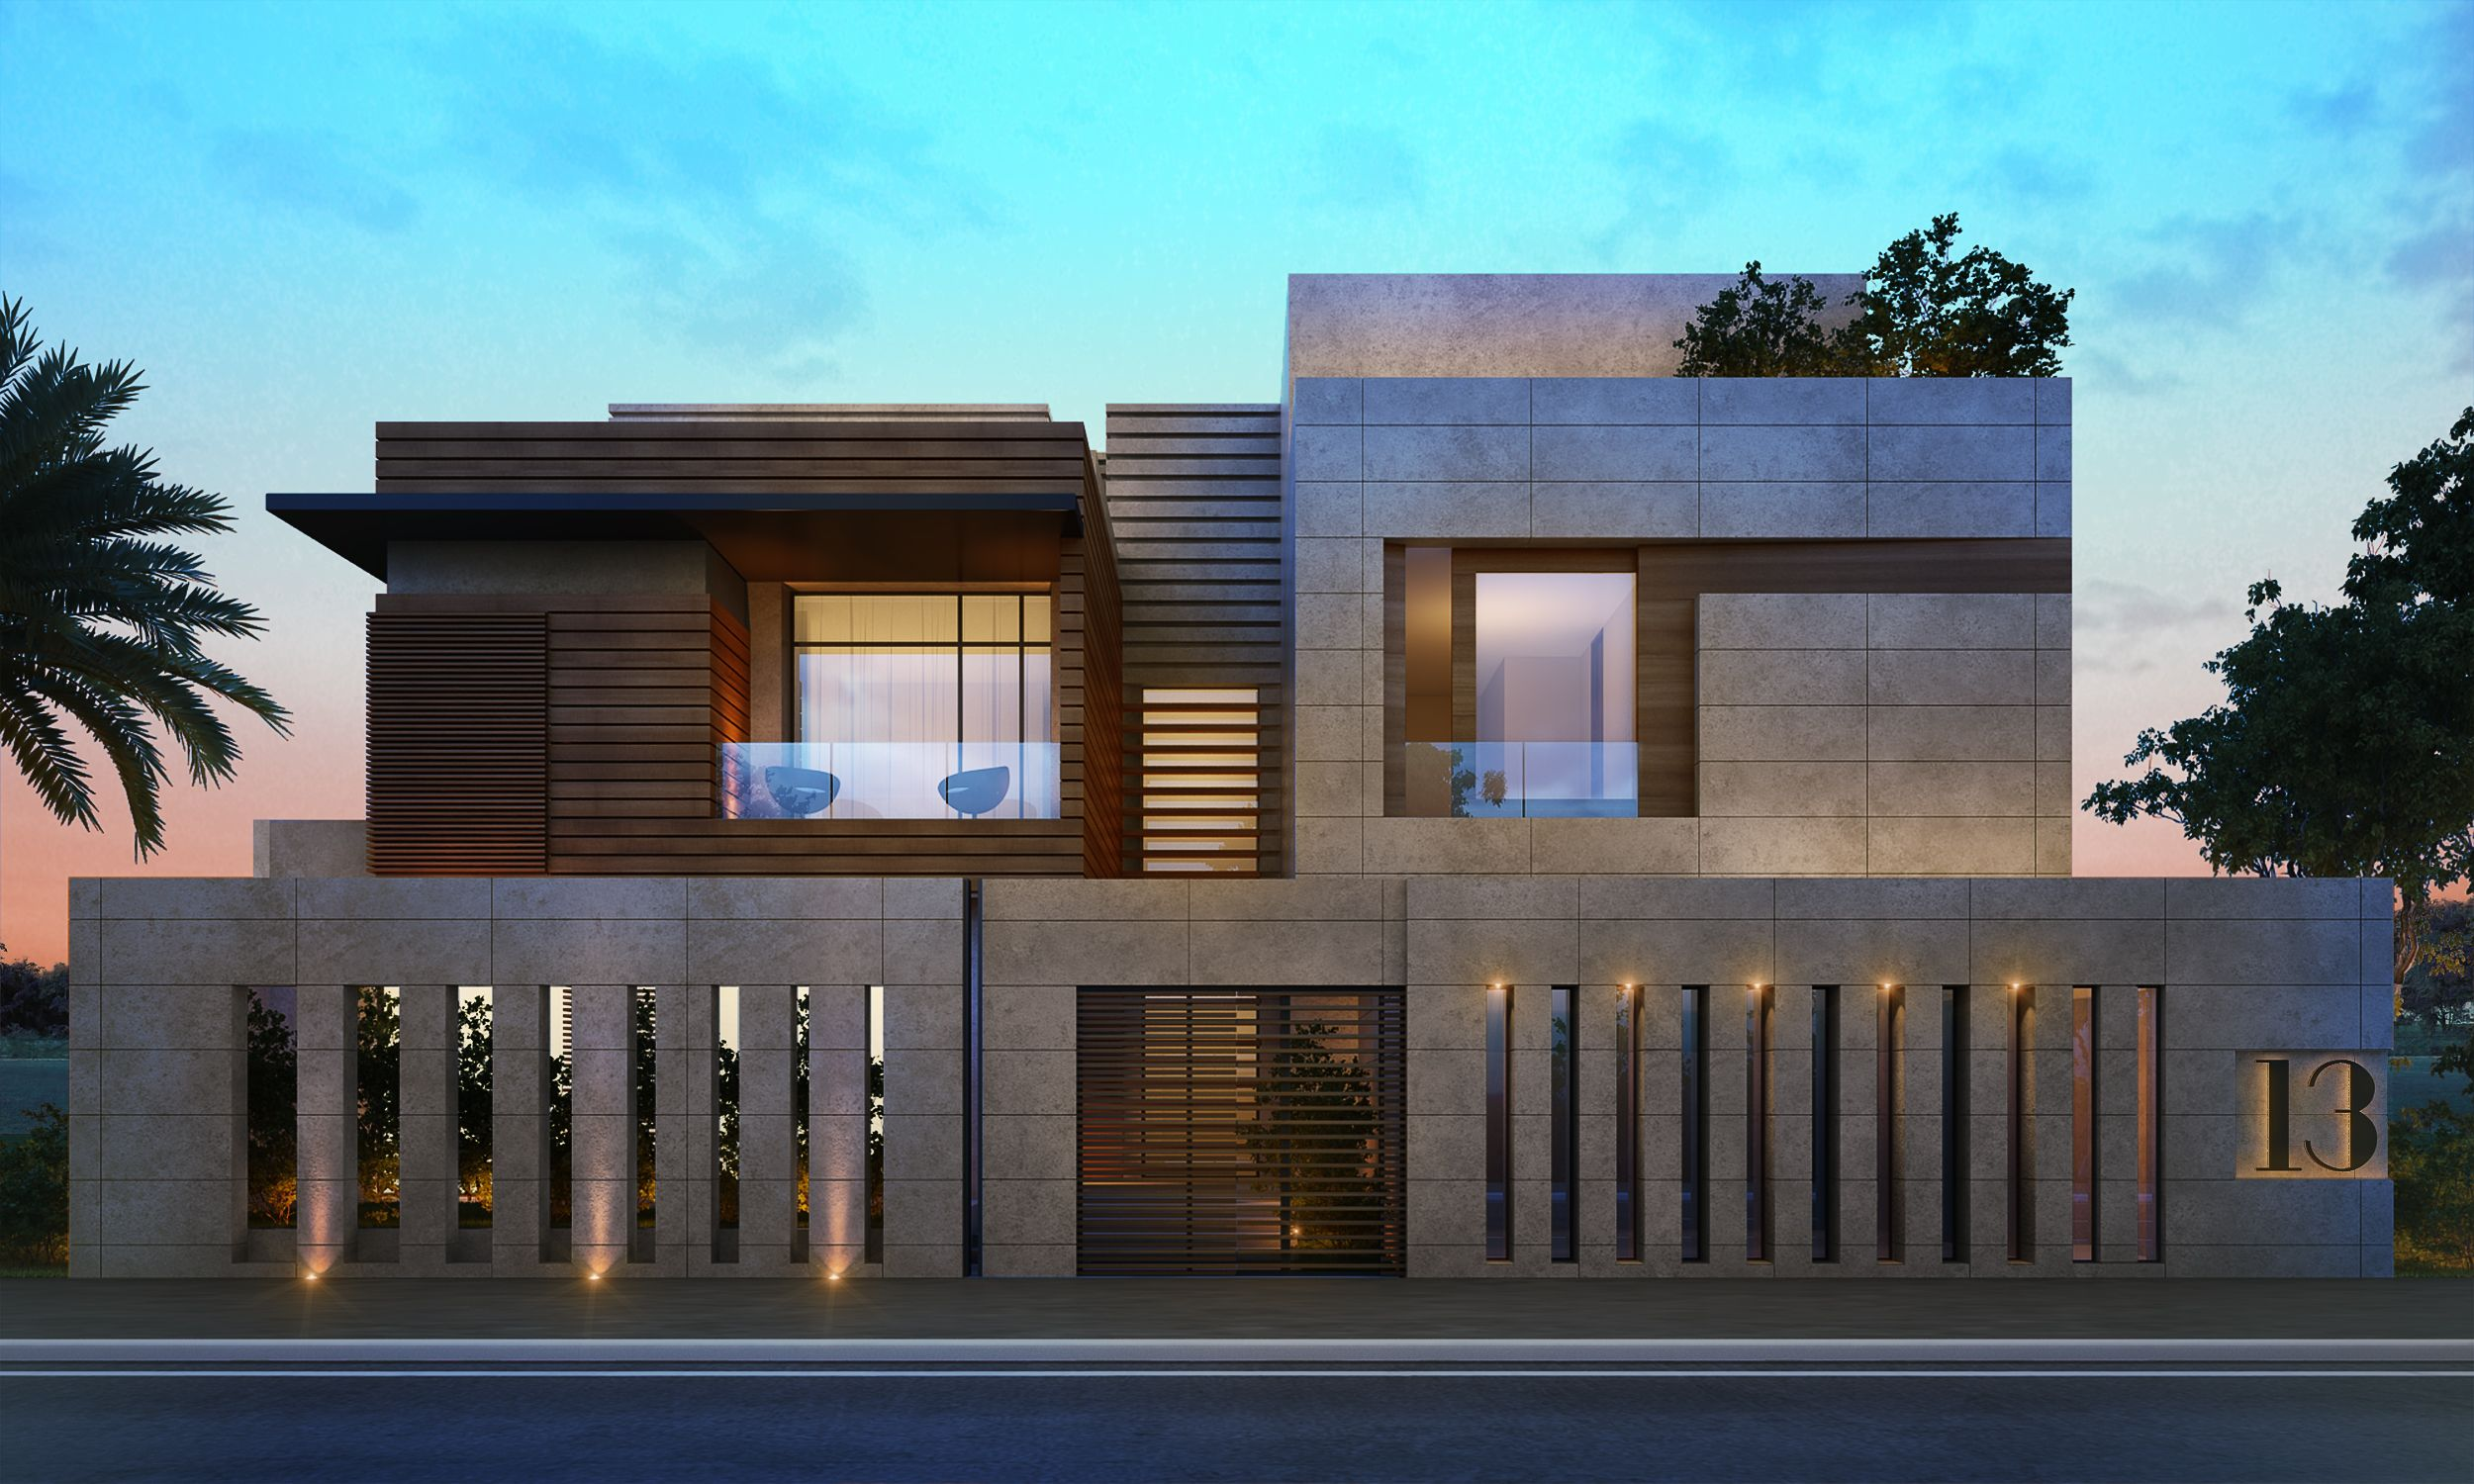 1000 M Private Villa Aldahya Kuwait Sarah Sadeq Architects Sarah